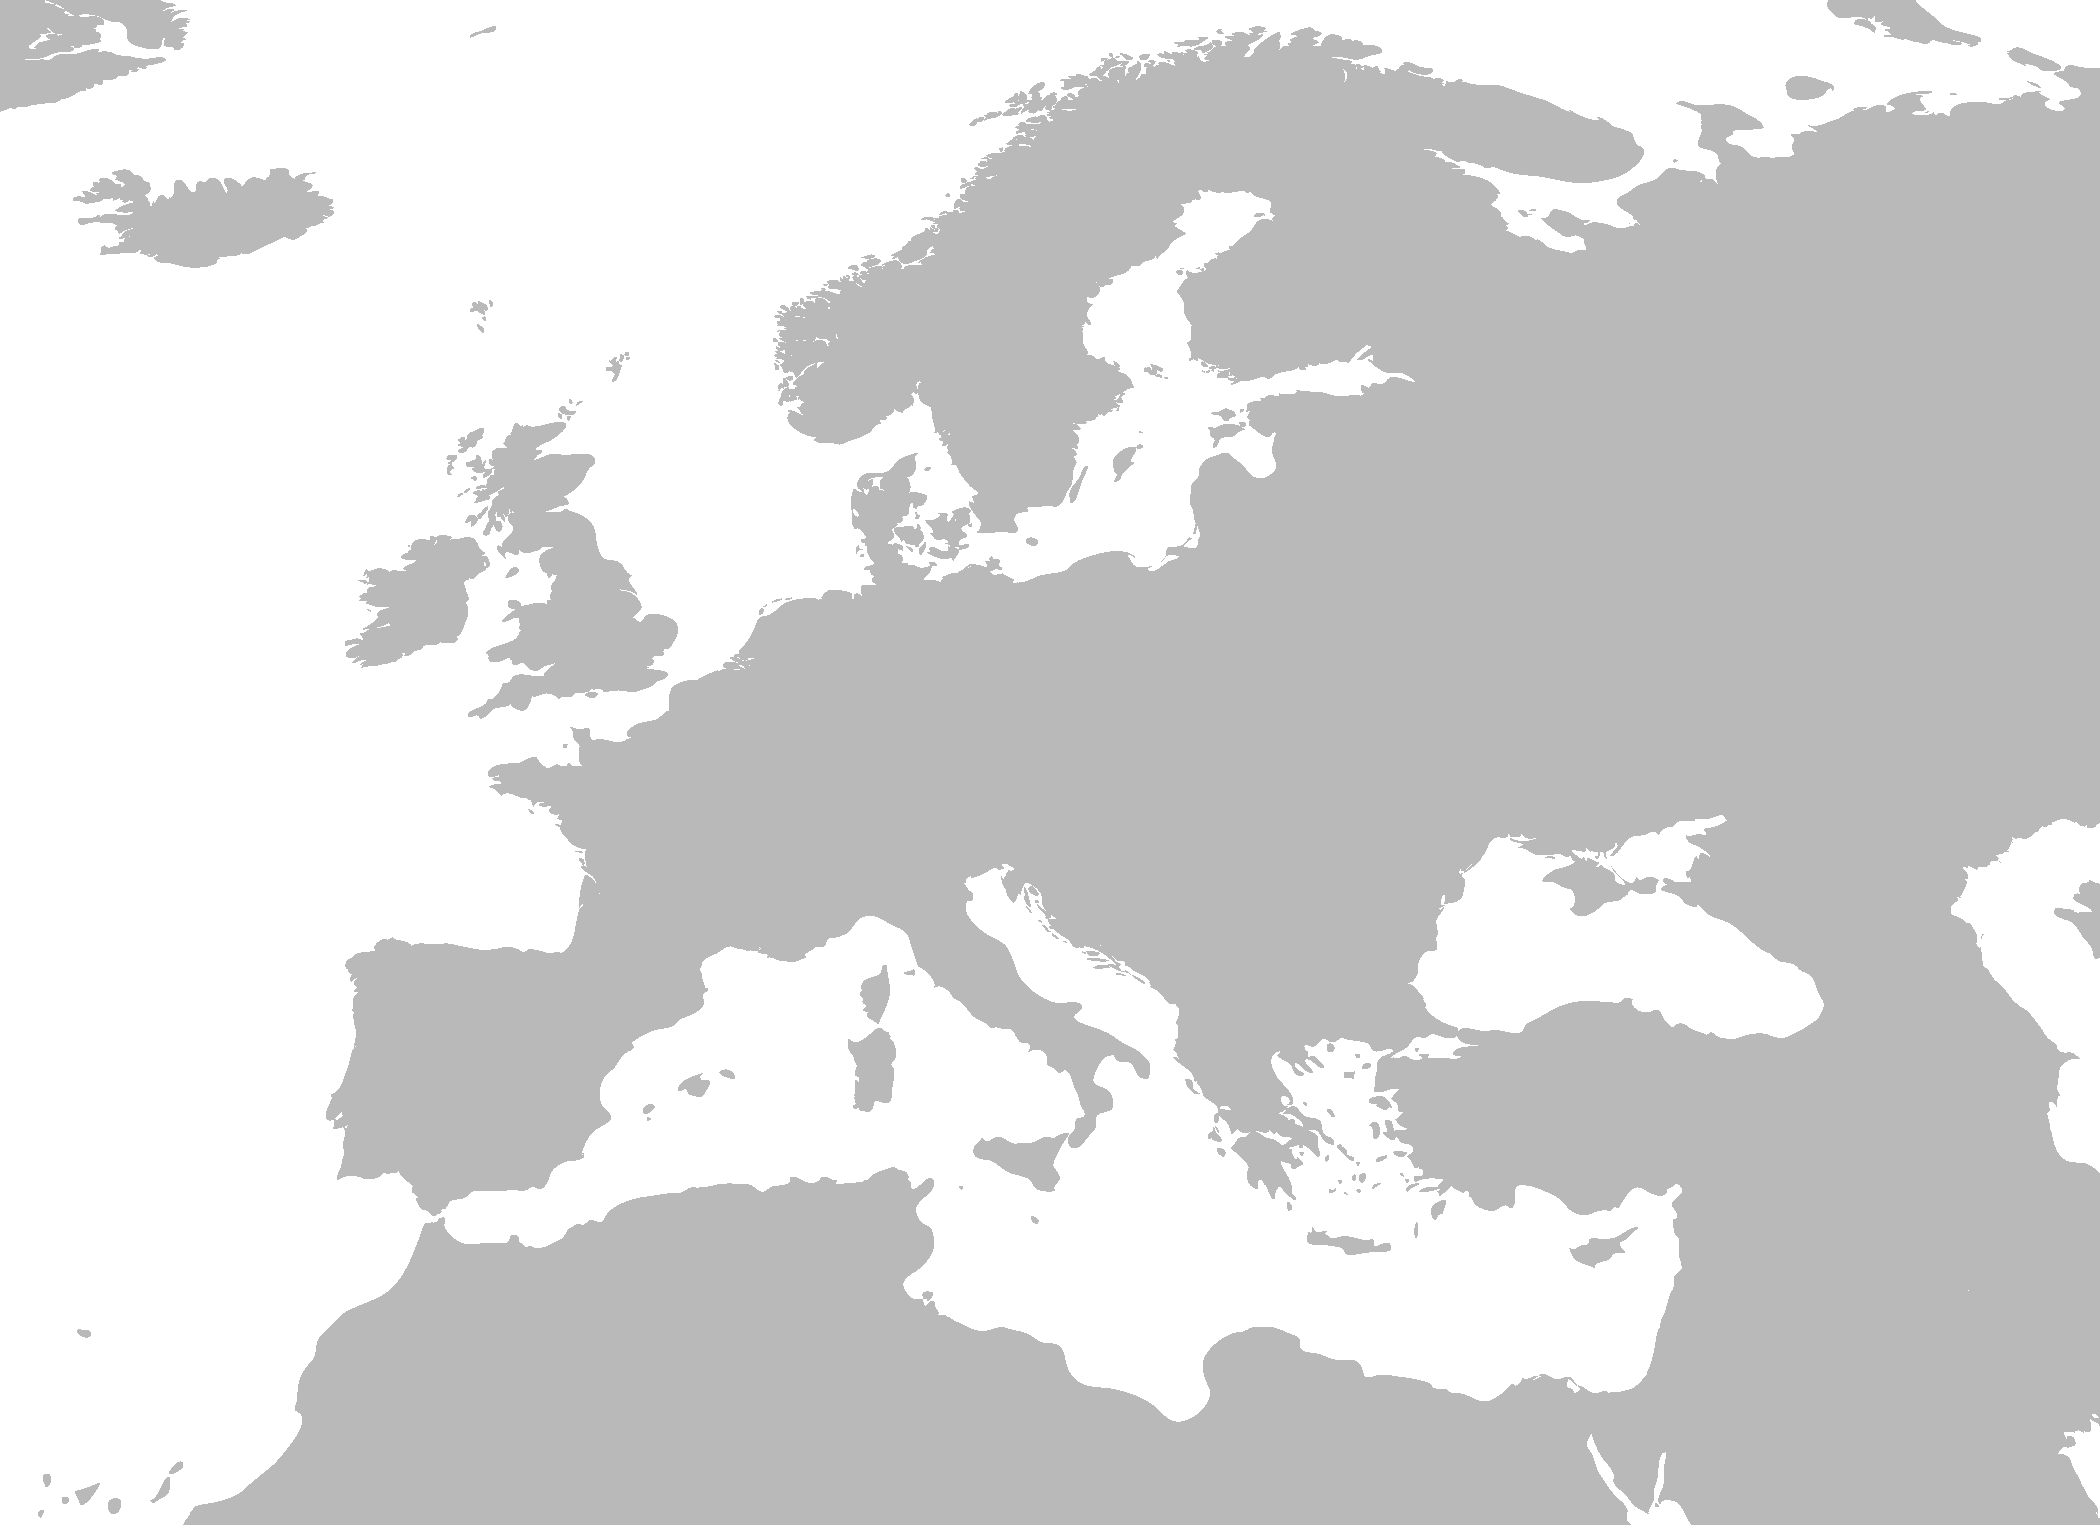 Maps: Blank Map Of Europe And Asia